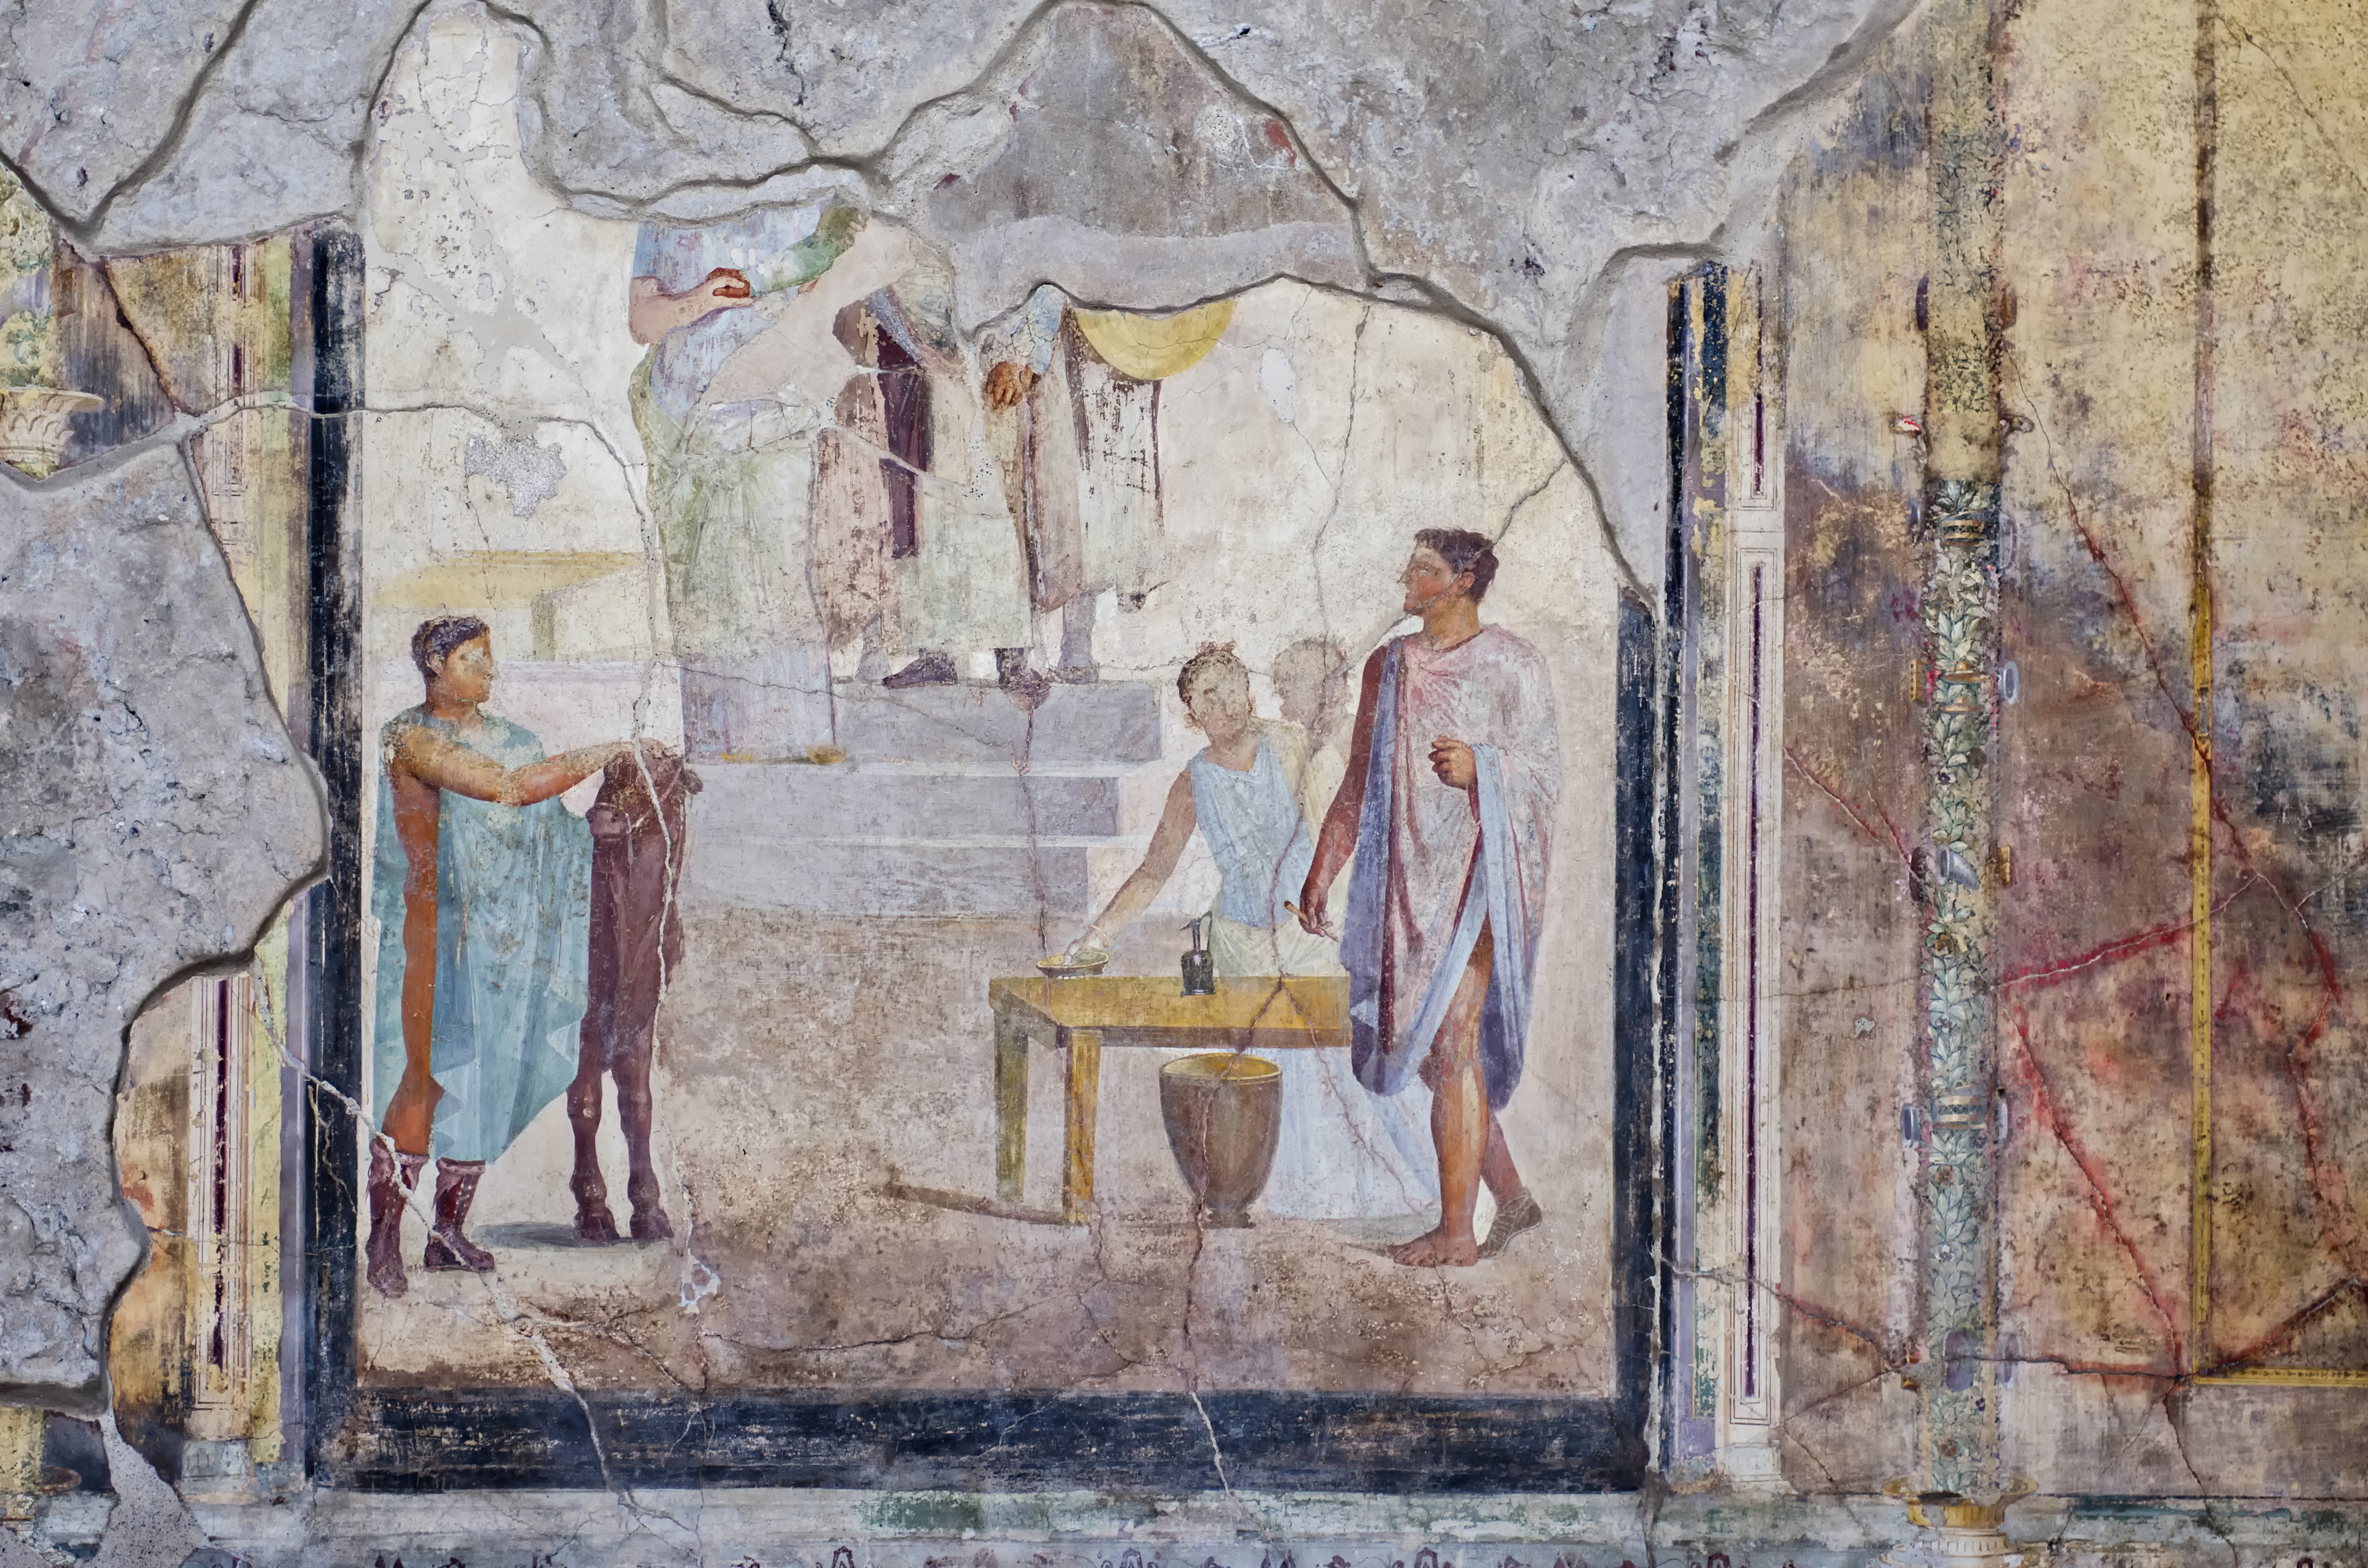 Fast food, bars and boutiques - the world's first shops uncovered in Pompeii